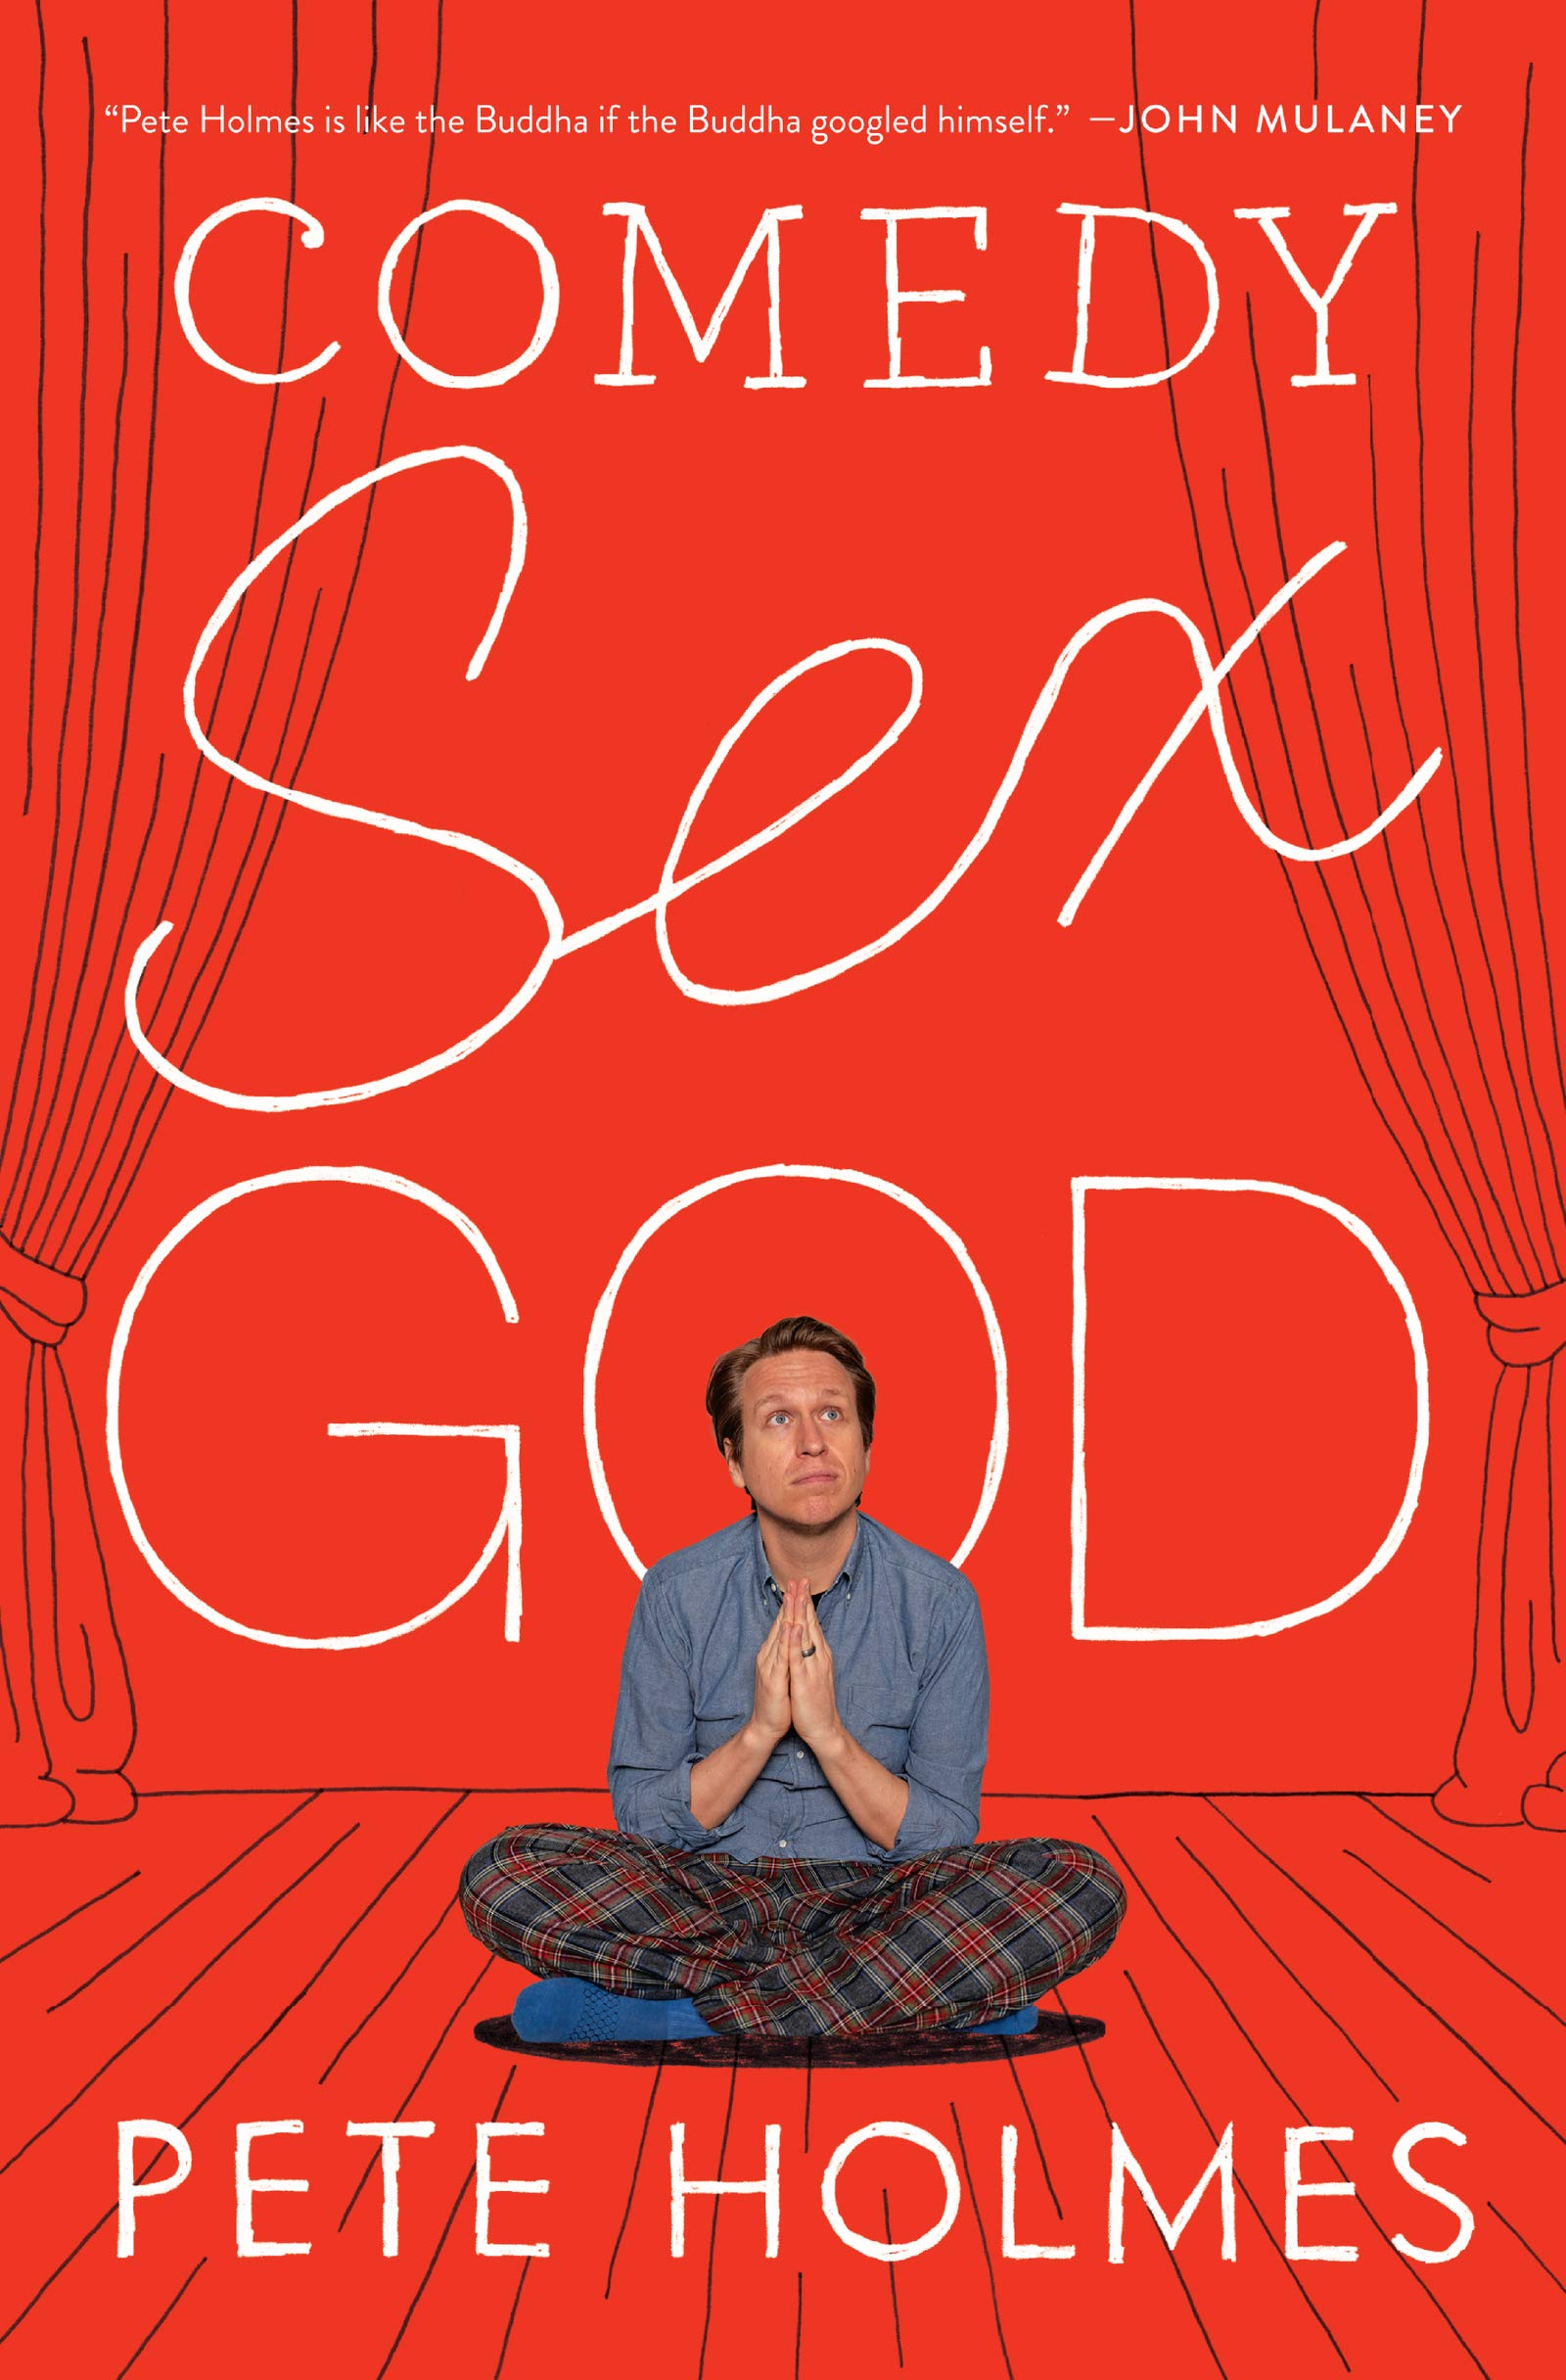 7. 'Comedy Sex God' by Pete Holmes